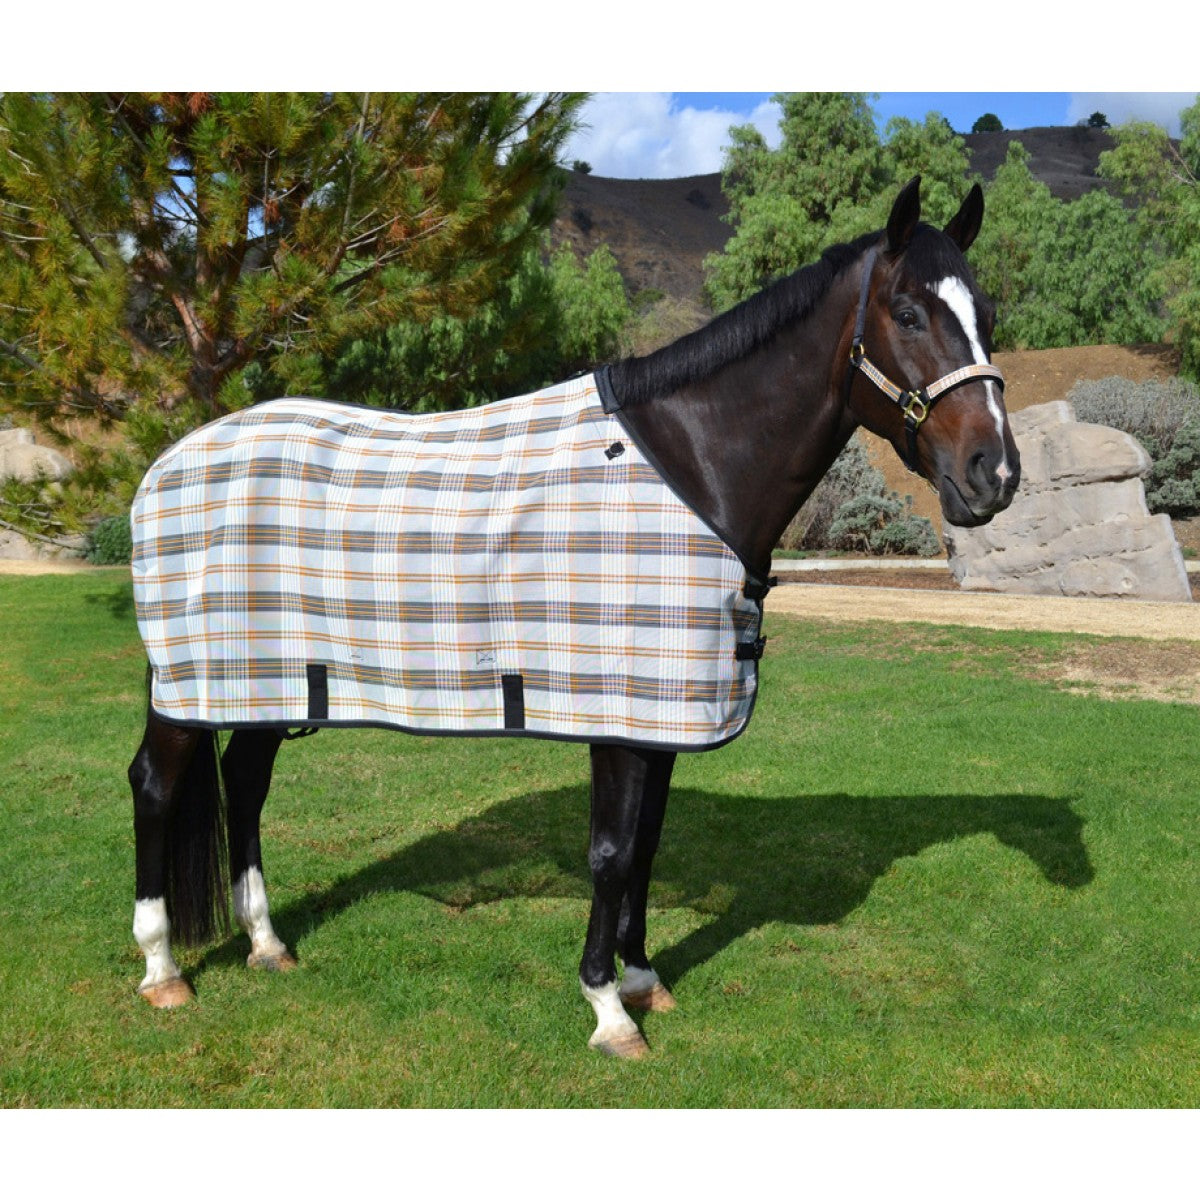 Horse Accessories View All Tack Hobby Horse Clothing Company Inc